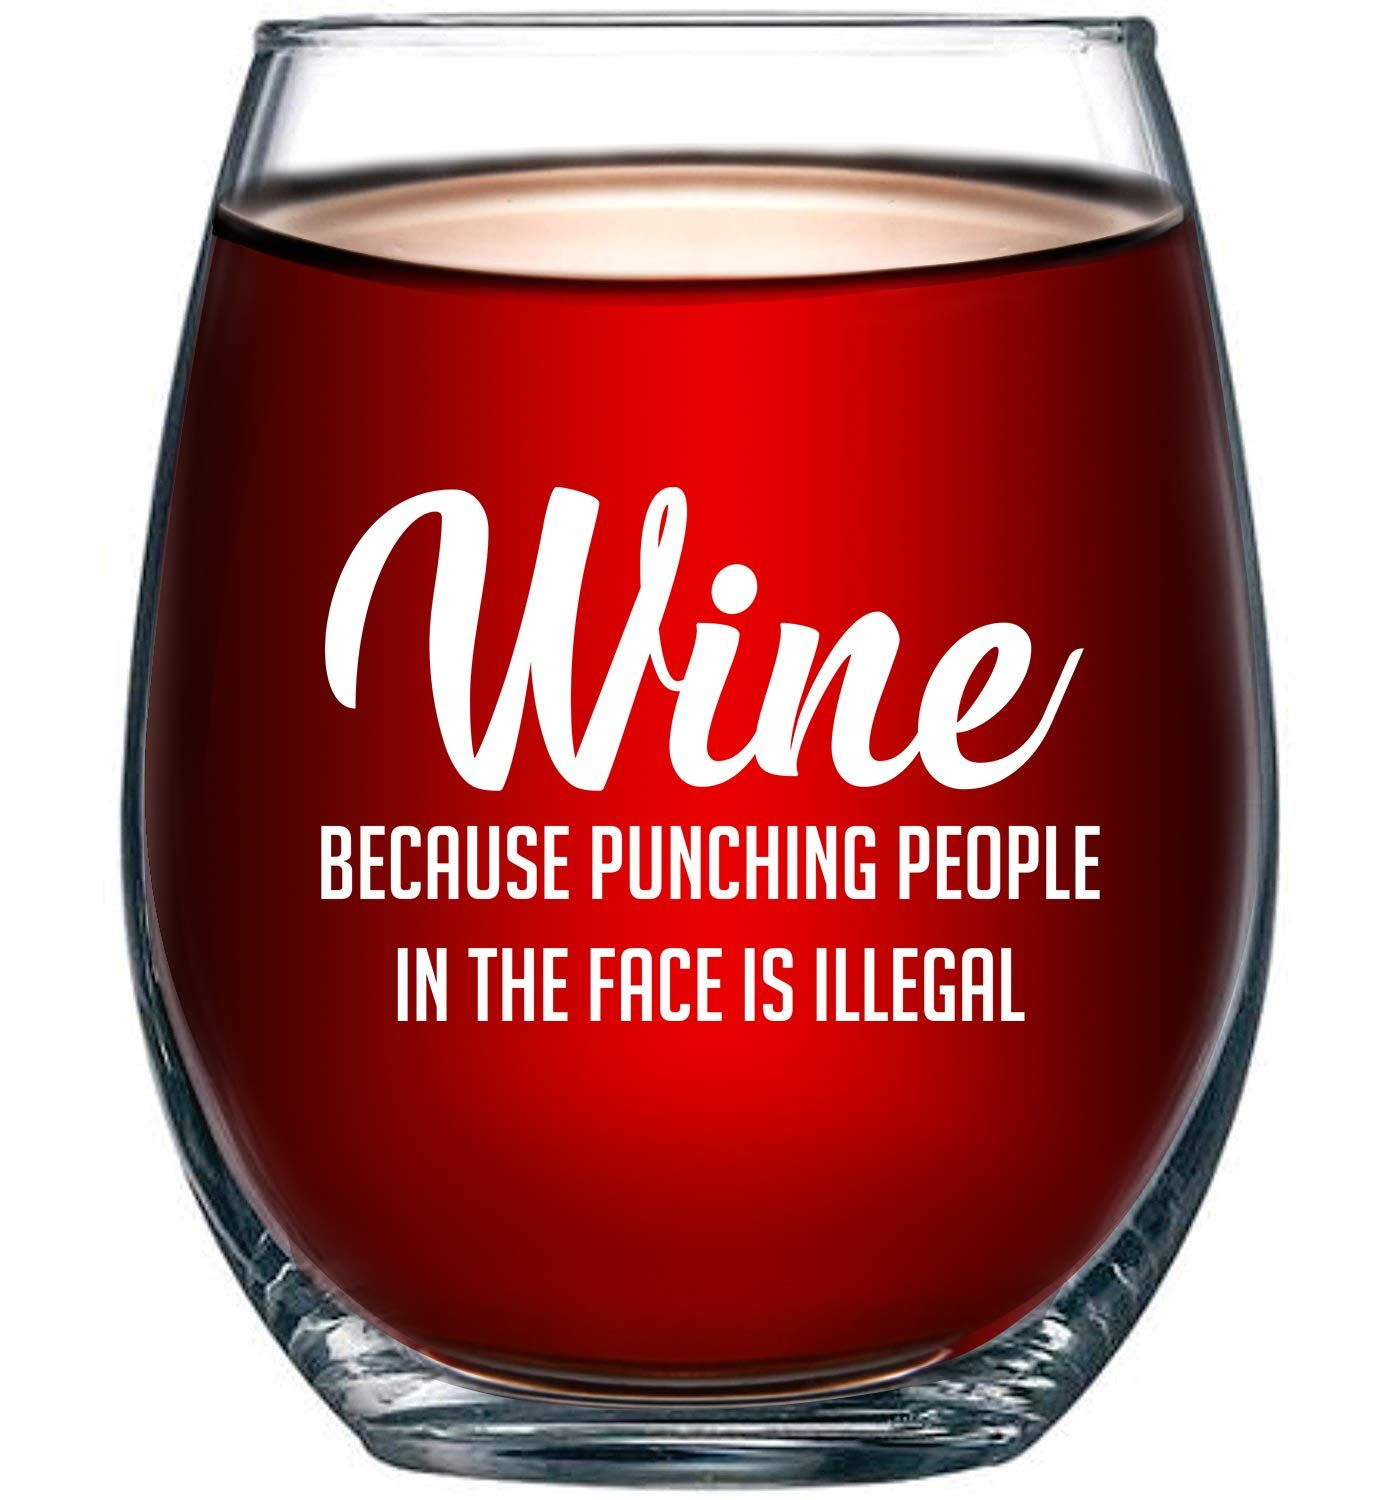 Because Punching People Illegal Funny In 2020 Funny Wine Glass Wine Humor Wine Gifts